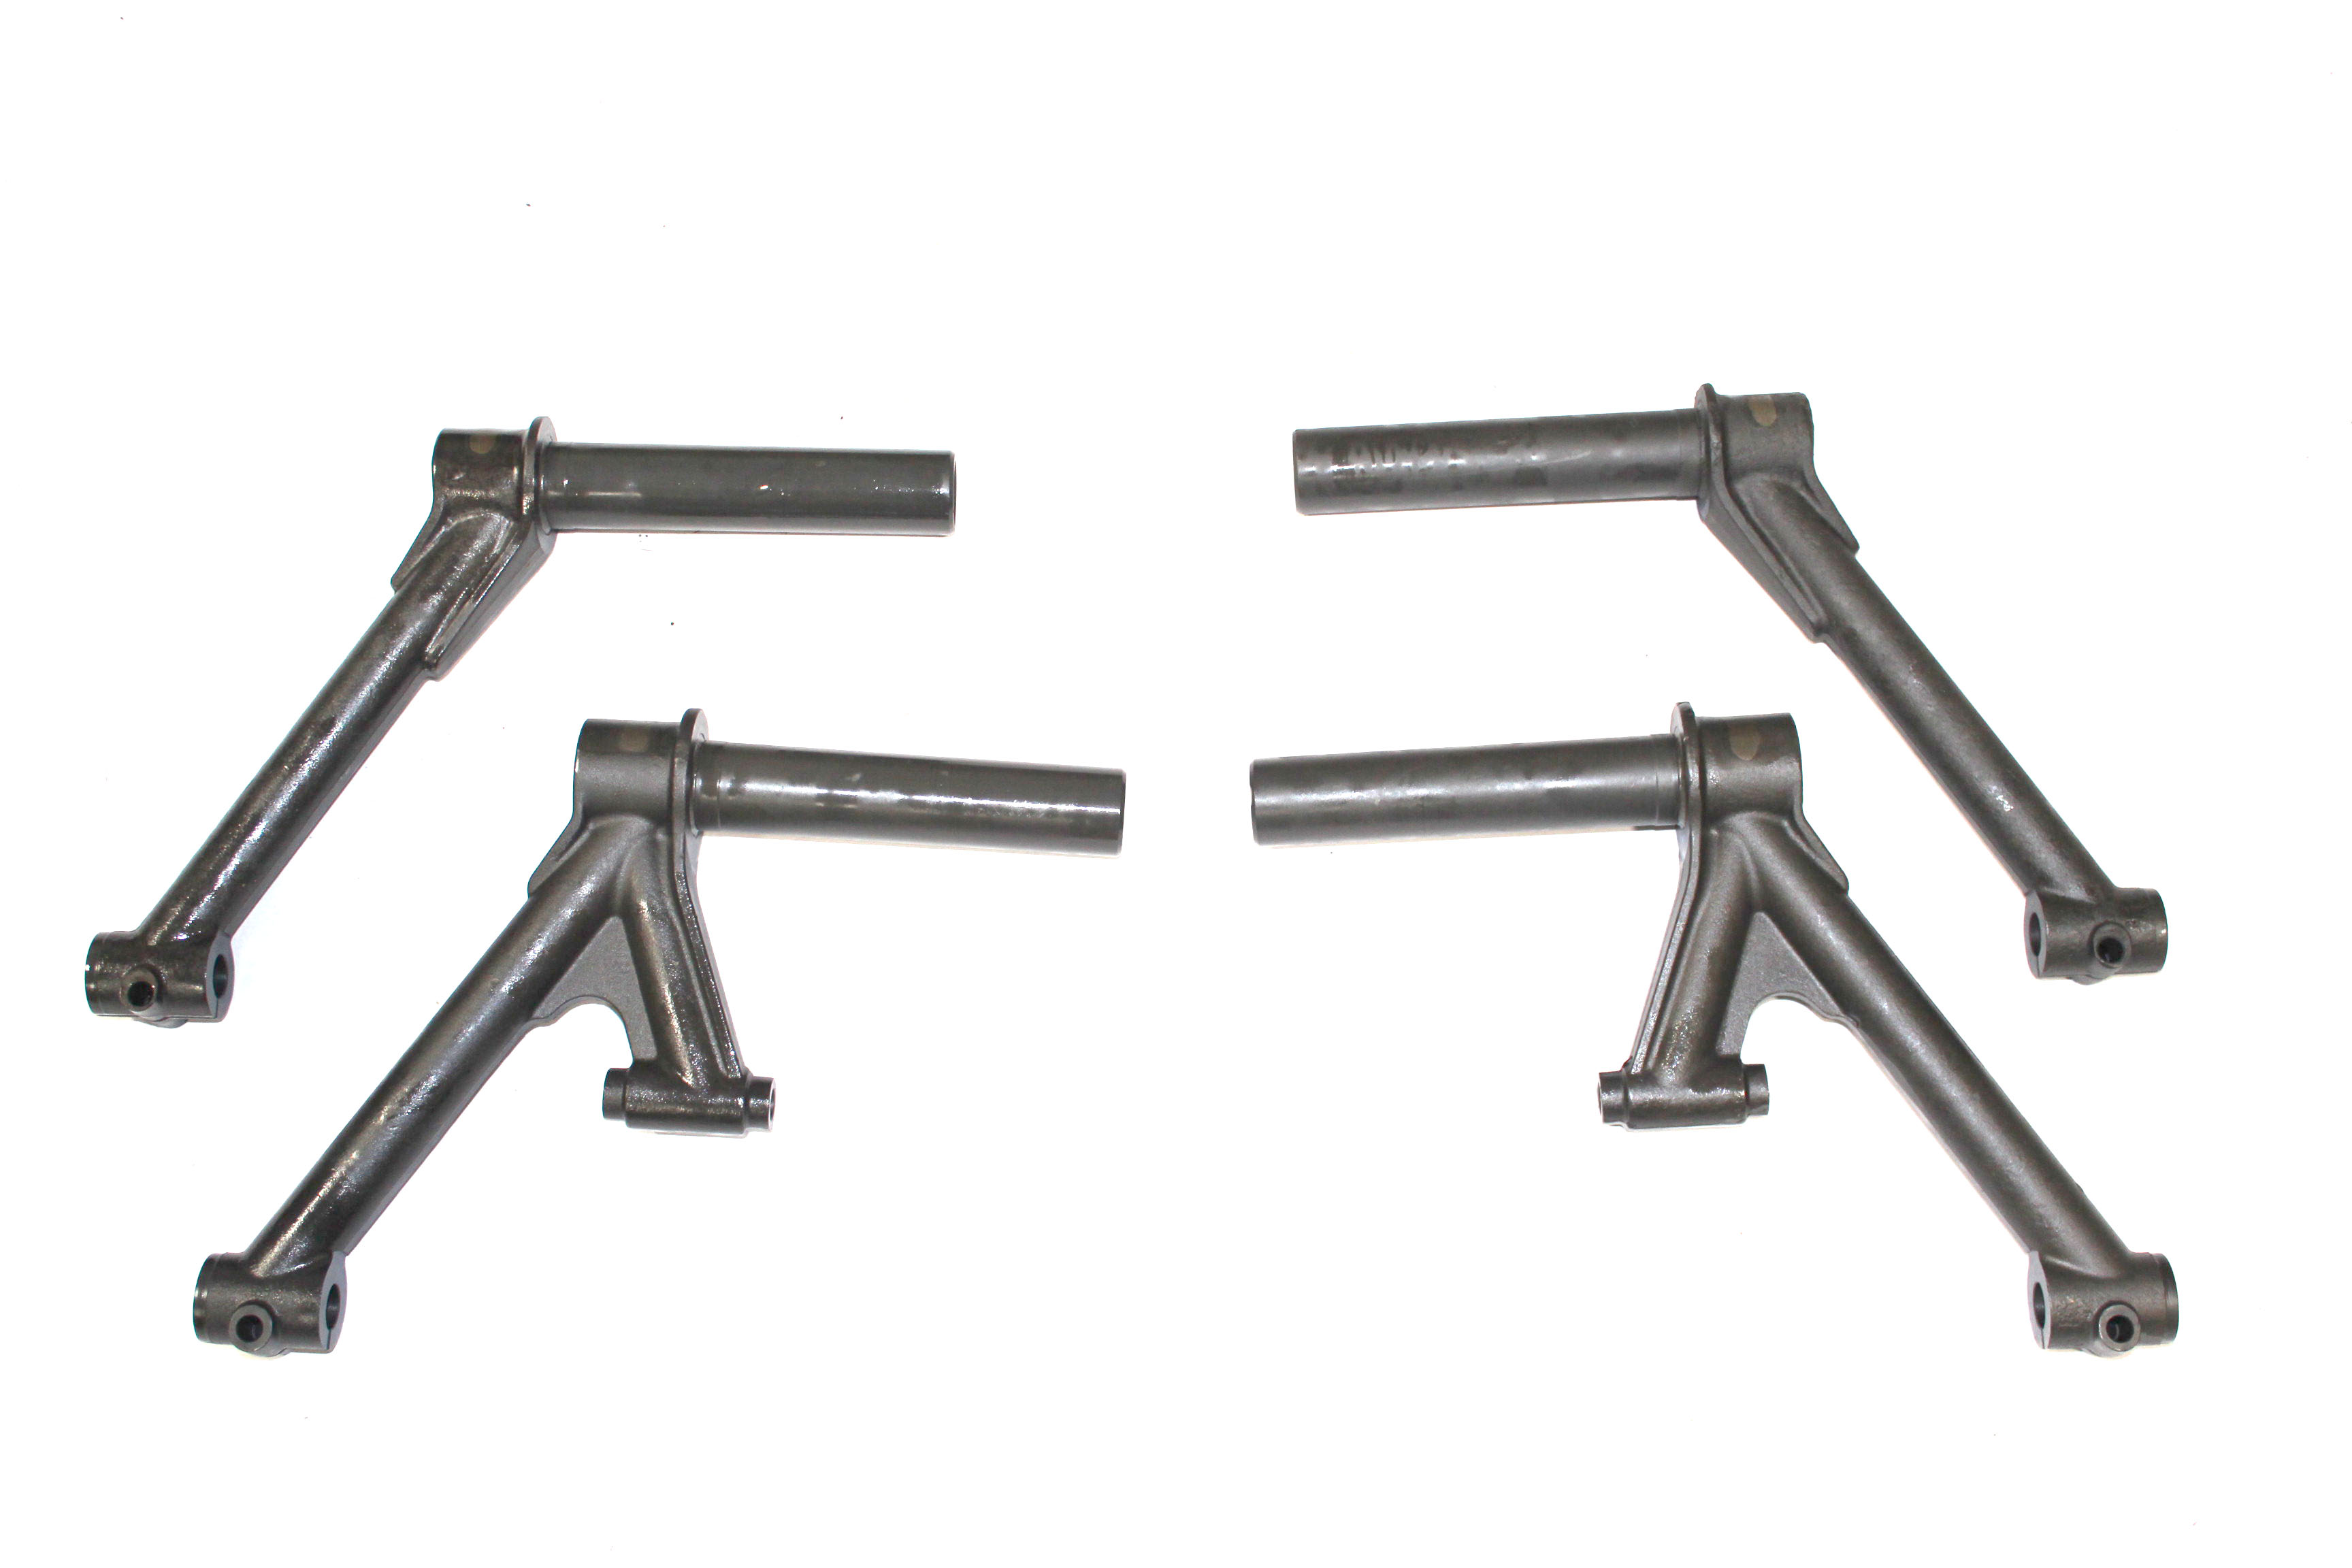 Empi Vw 46.5 Front Trailing Arm Thru Rod Kit For 5 /& 6 Wider Vw Axle Beams